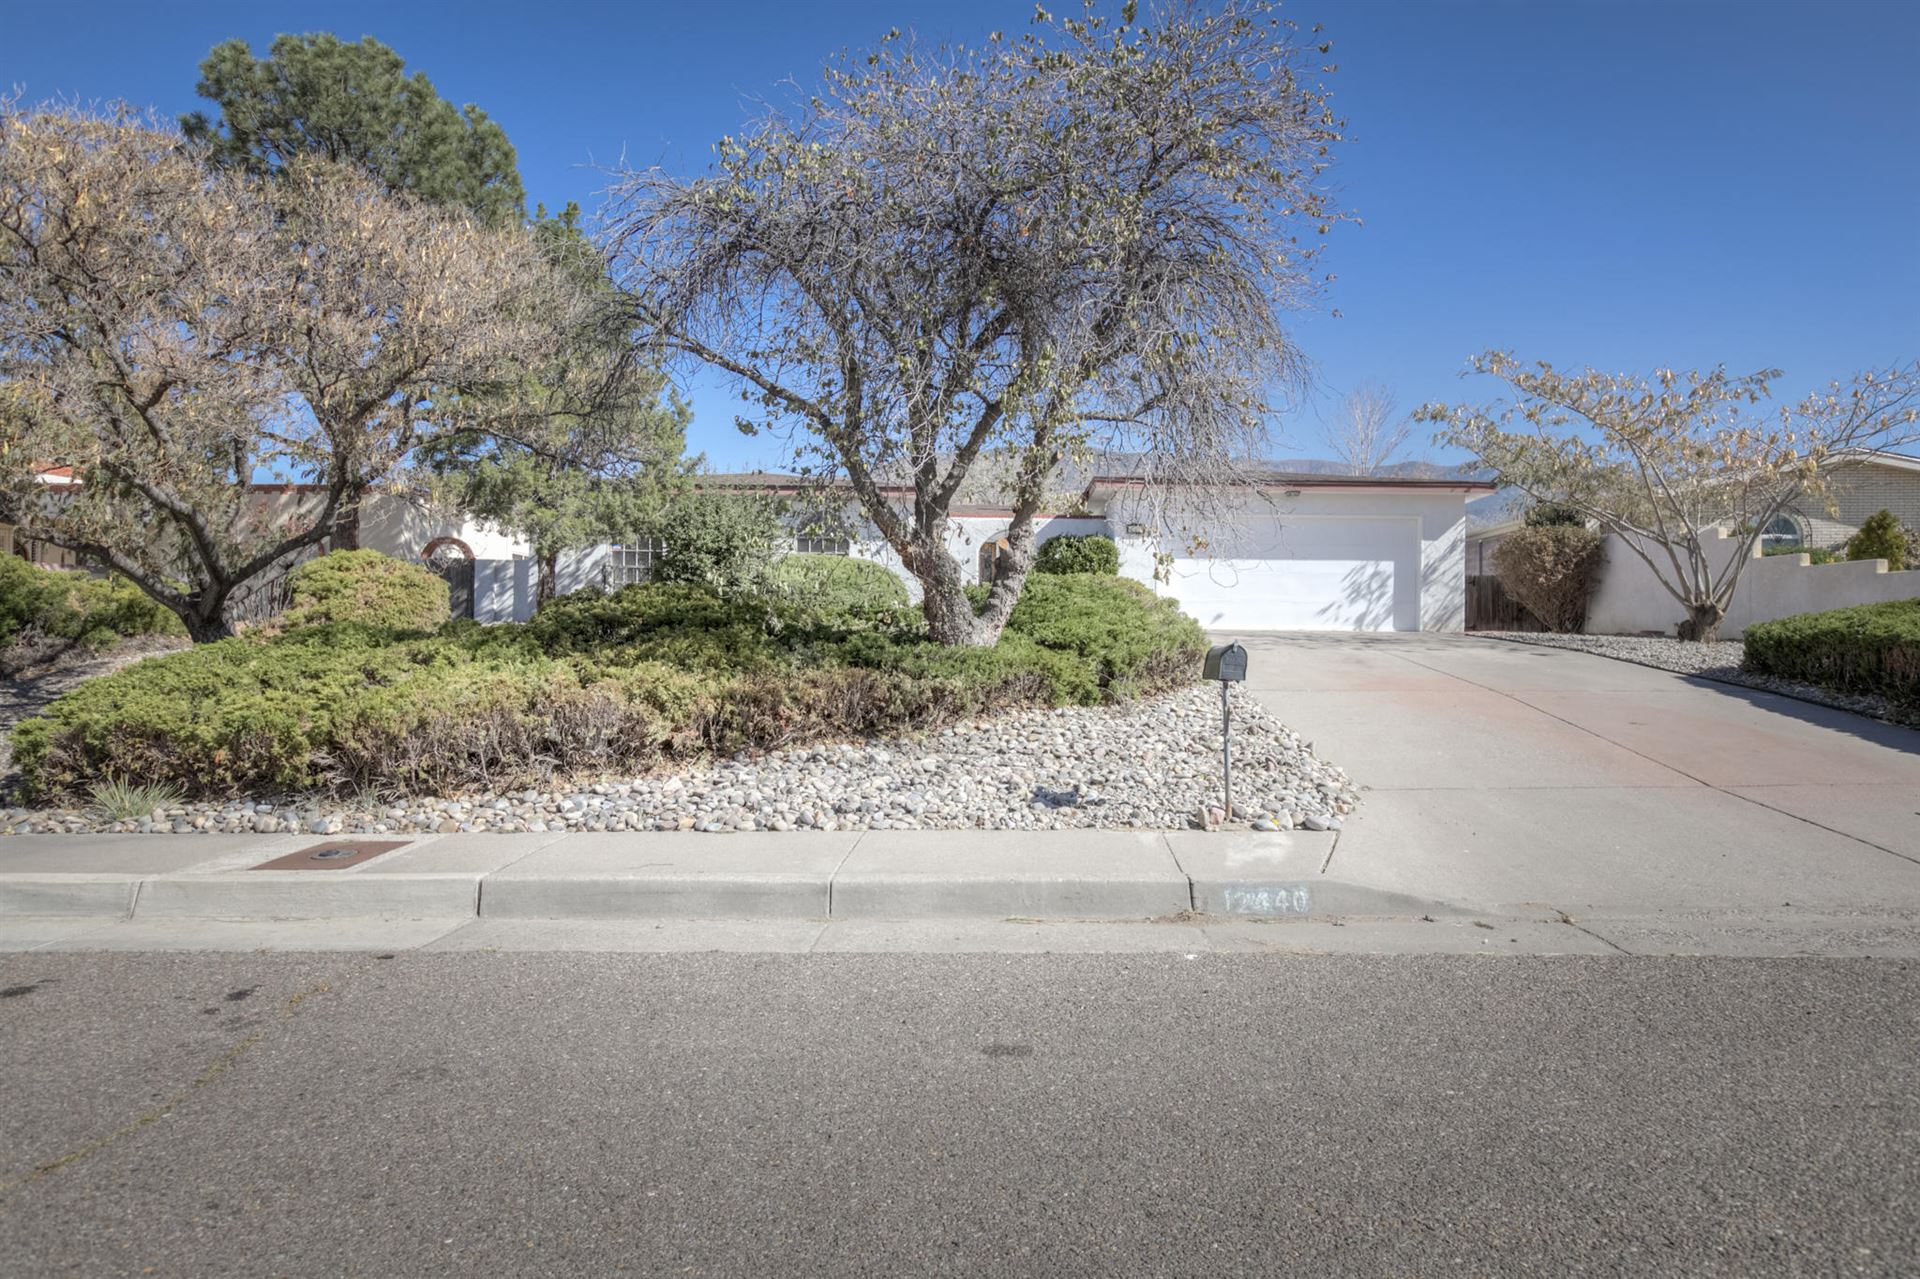 12440 CHELWOOD Trail NE, Albuquerque, NM 87112 - MLS#: 980533